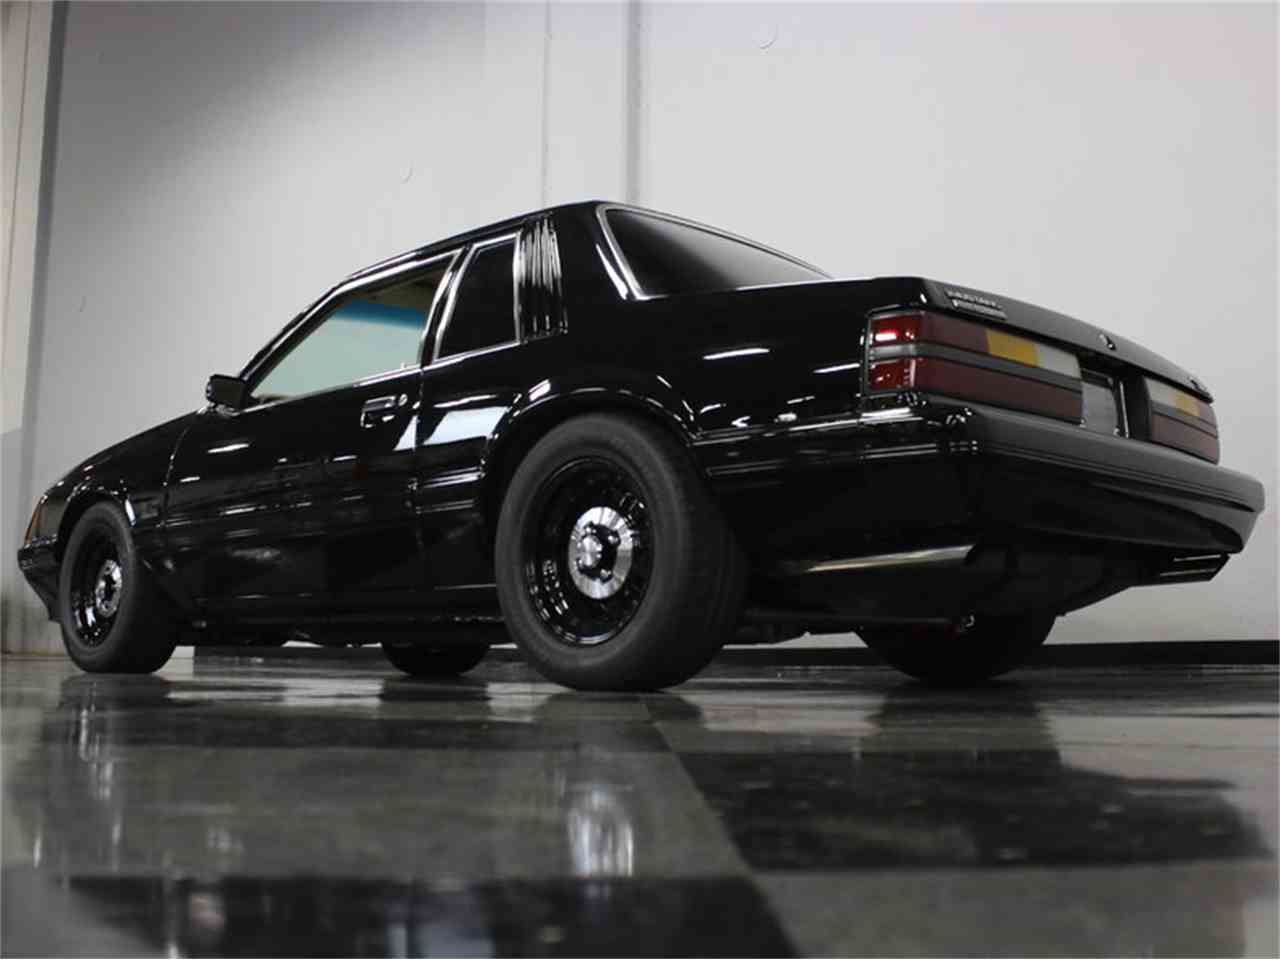 Large Picture of 1986 Ford Mustang SSP Interceptor - $24,995.00 - JZNT